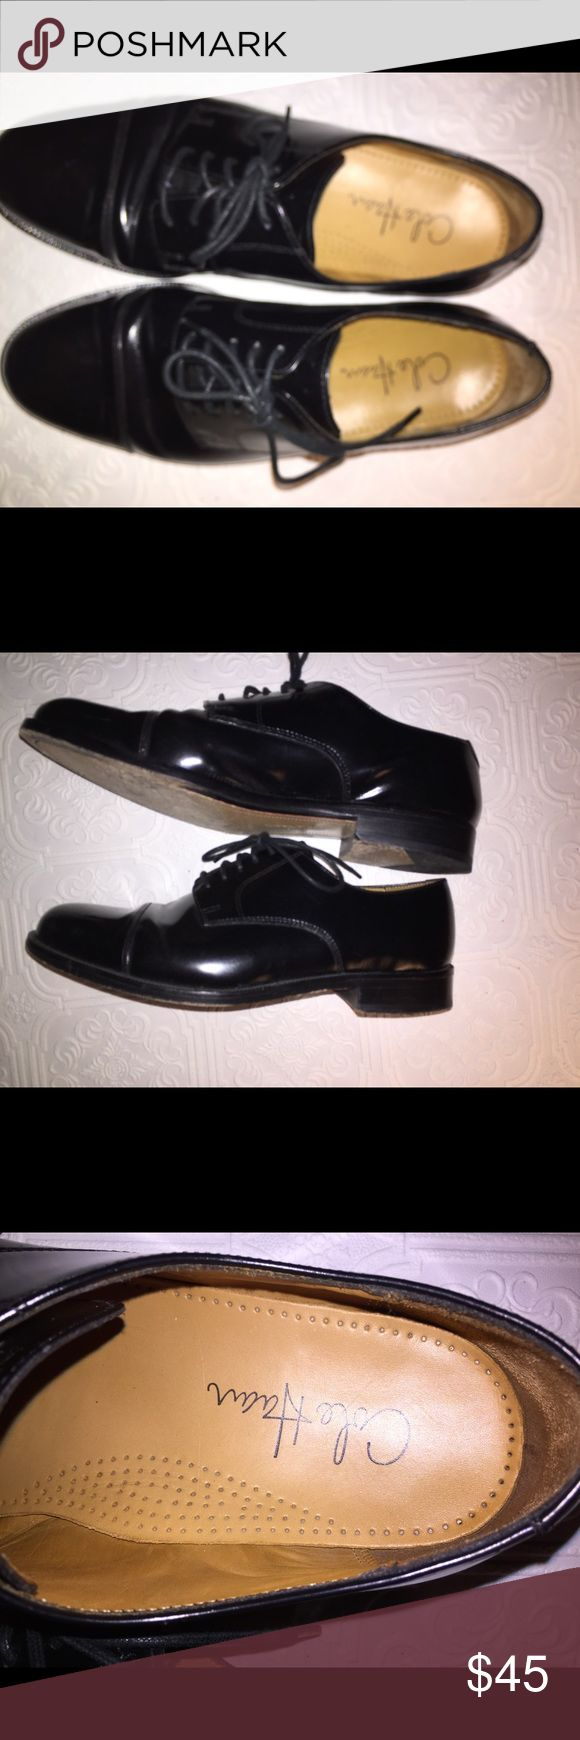 Cole Hann dress shoes. Beautiful❗️ Size 8.5 Cole Hann authentic dress shoes. The soles are in good condition. Shoes have a wrinkle across top where the foot bends but these are absolutely beautiful for the price❤️❤️❤️ Cole Haan Shoes Oxfords & Derbys